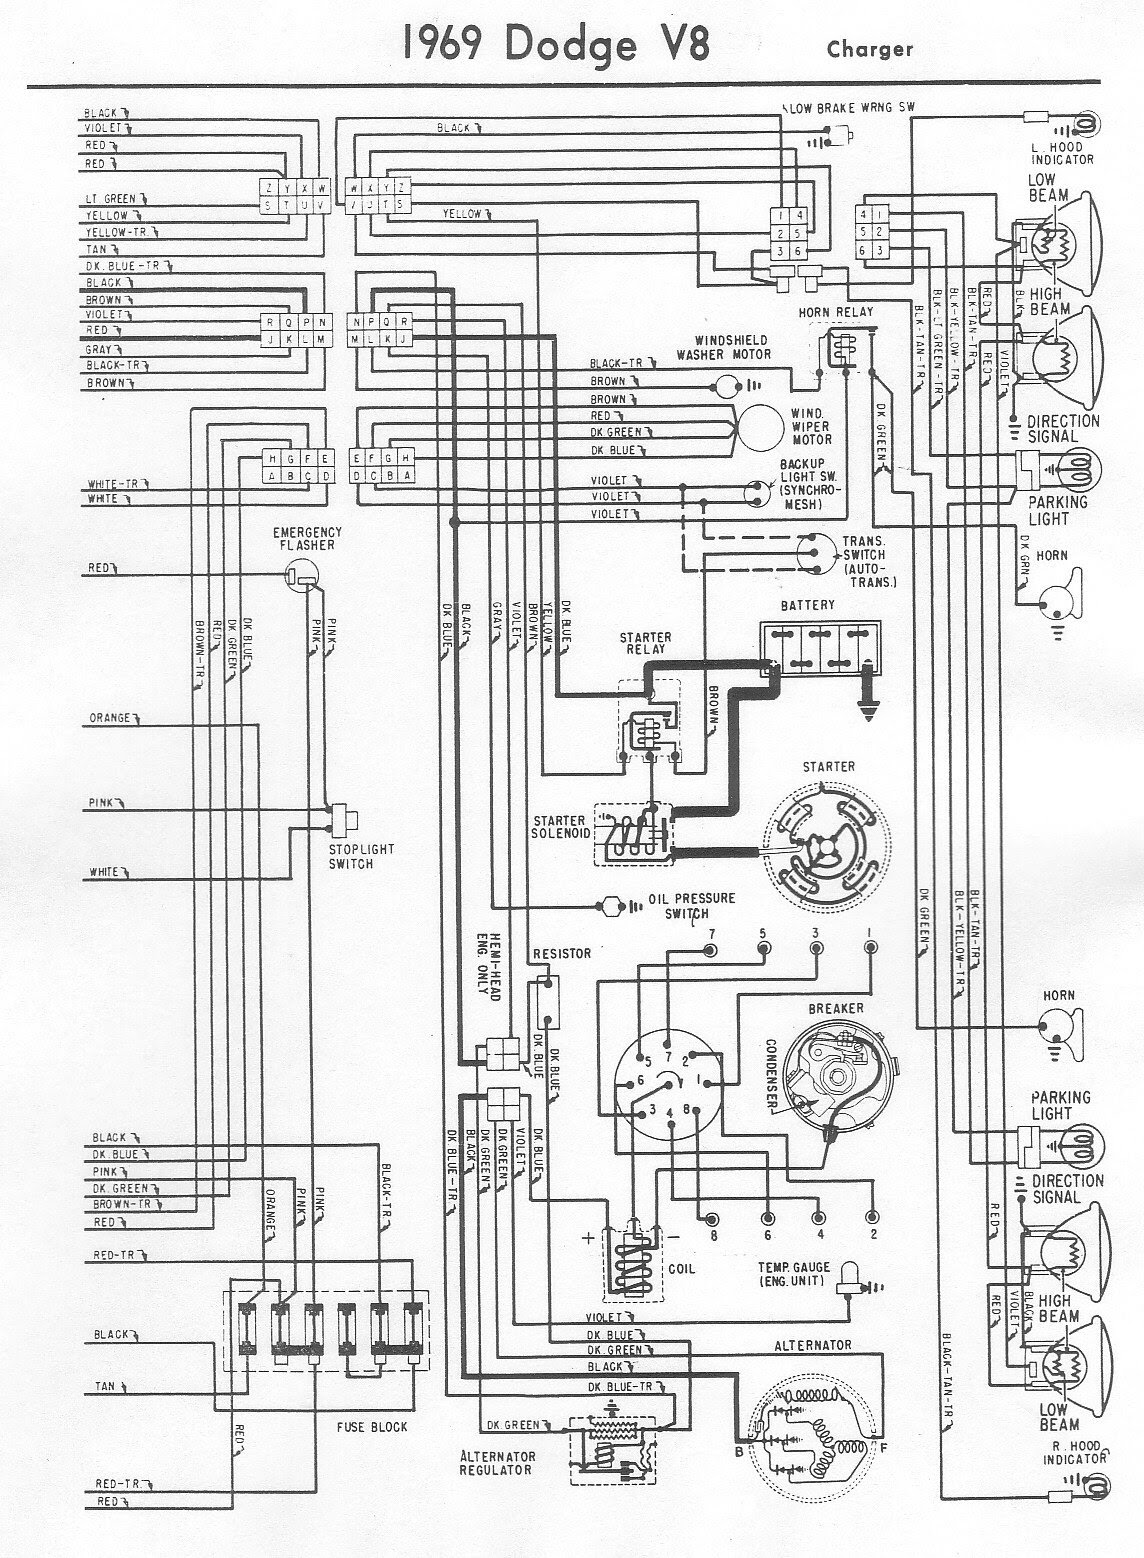 1972 Dodge Dart Wiring Diagram Bege Wiring Diagram